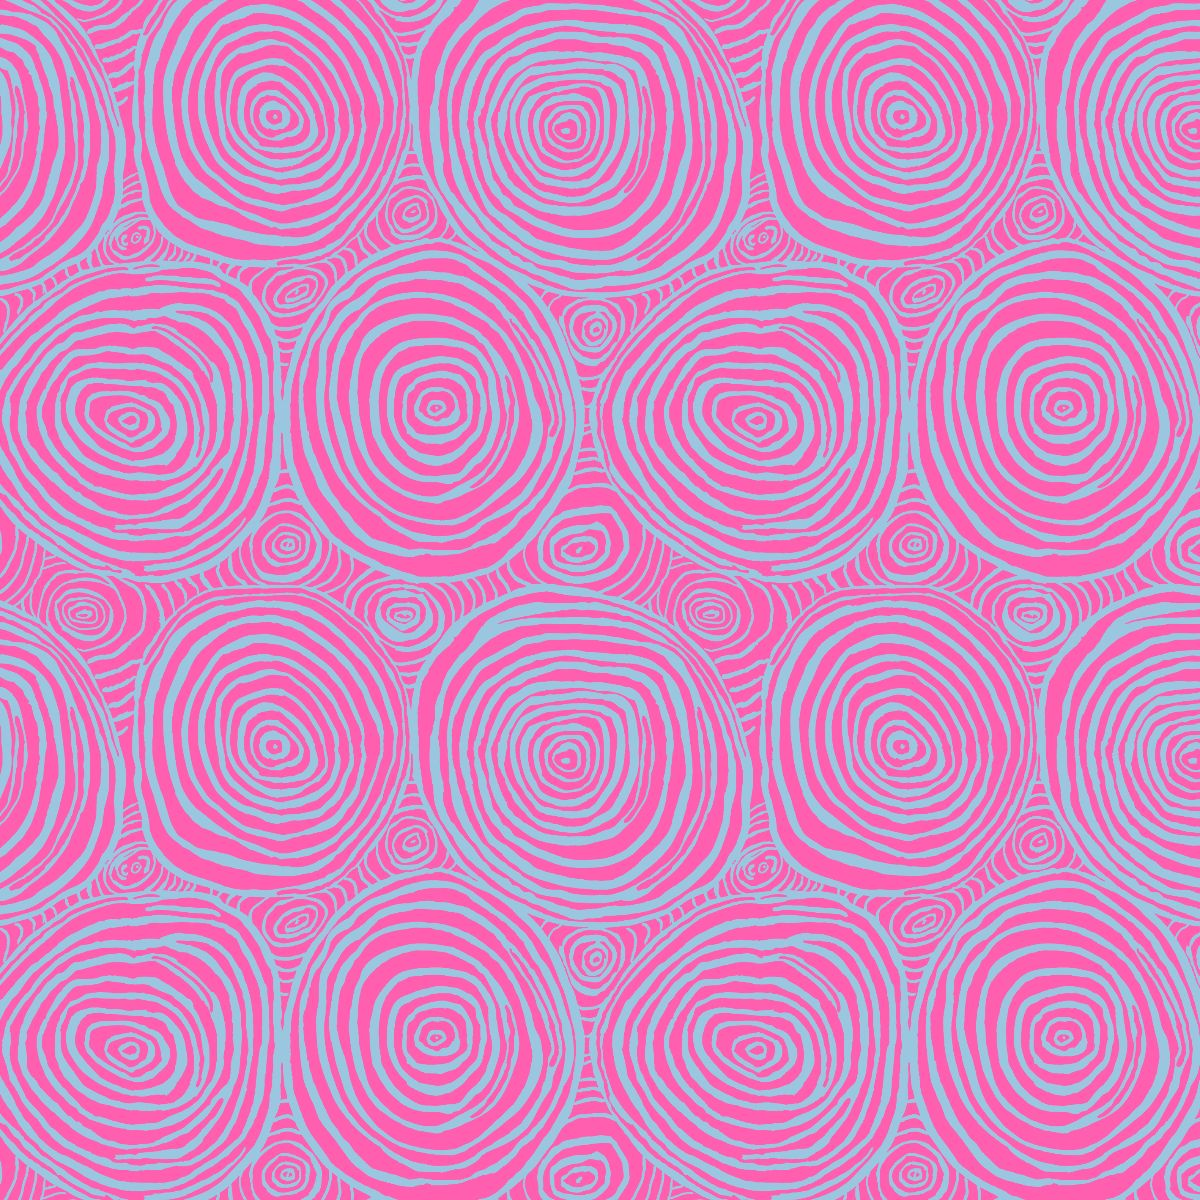 Brandon Mably for Kaffe Fassett Collective : Onion Rings in Pink : Free Spirit : Wideback